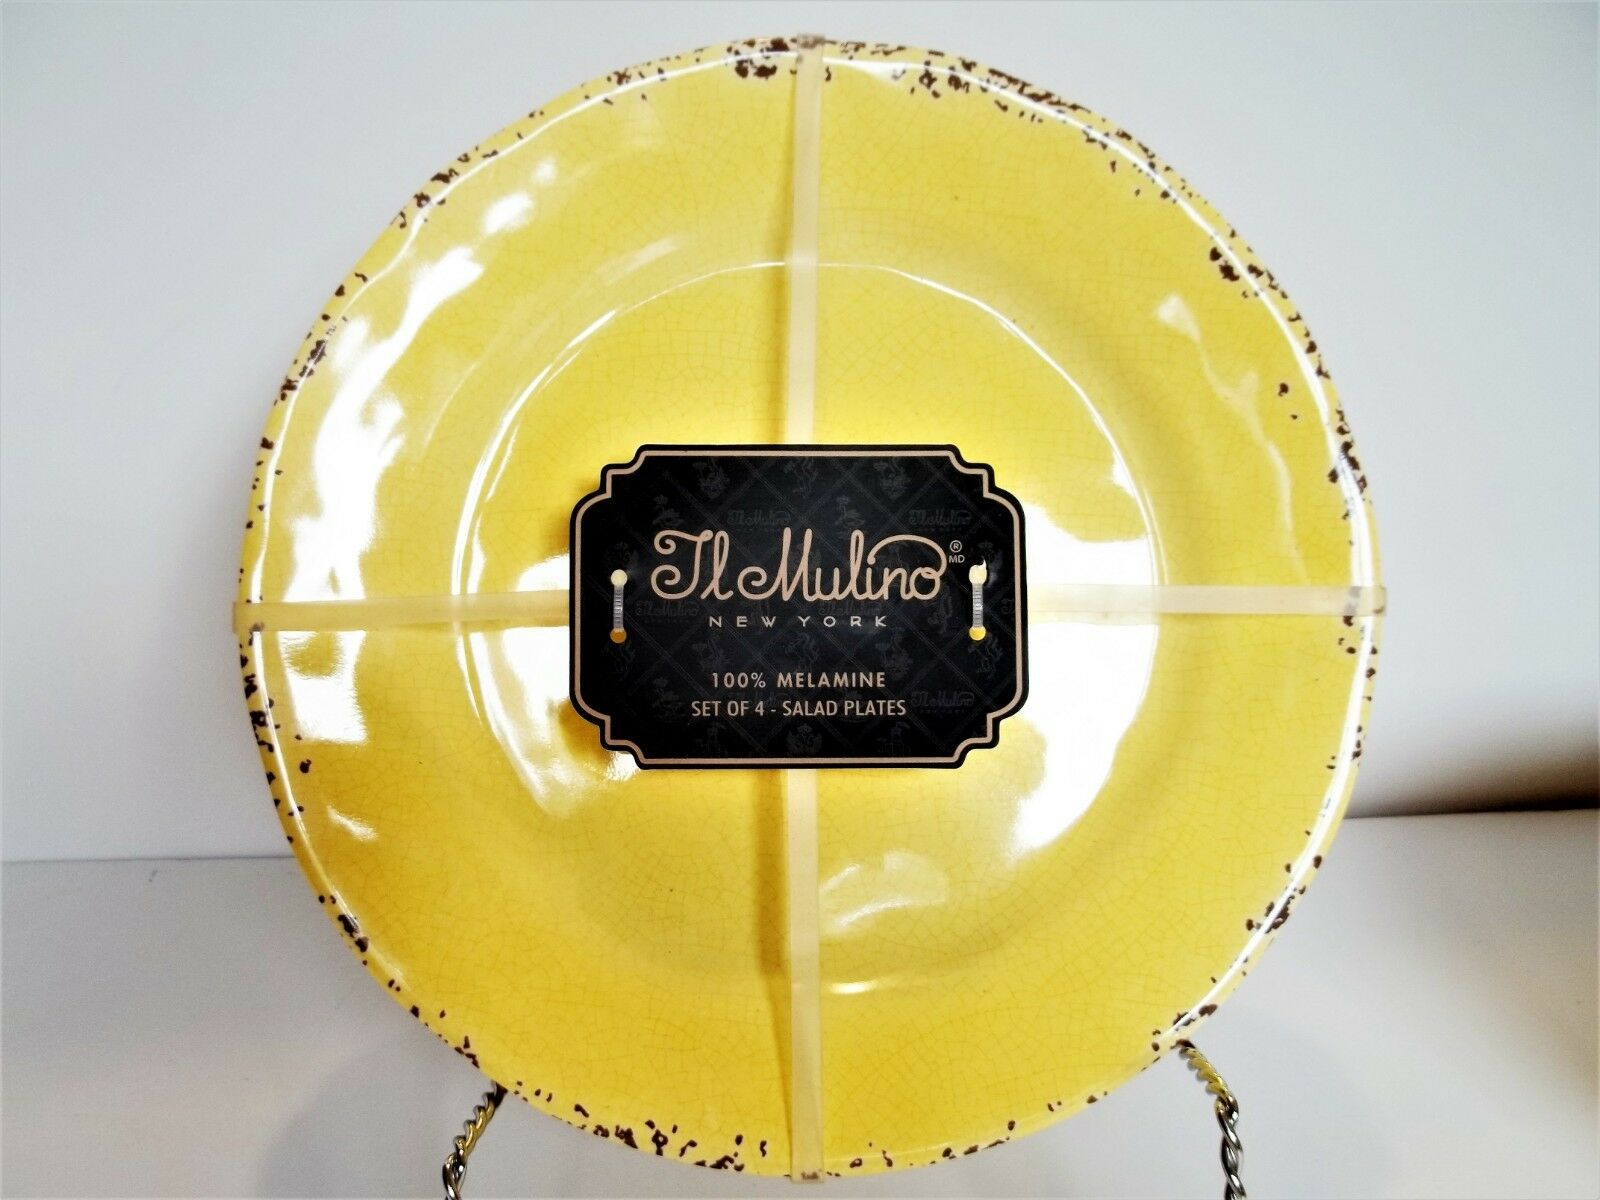 IL MULINO Melamine Salad Plate Set RUSTIC YELLOW, Small, Salad, Side, NEW X 4